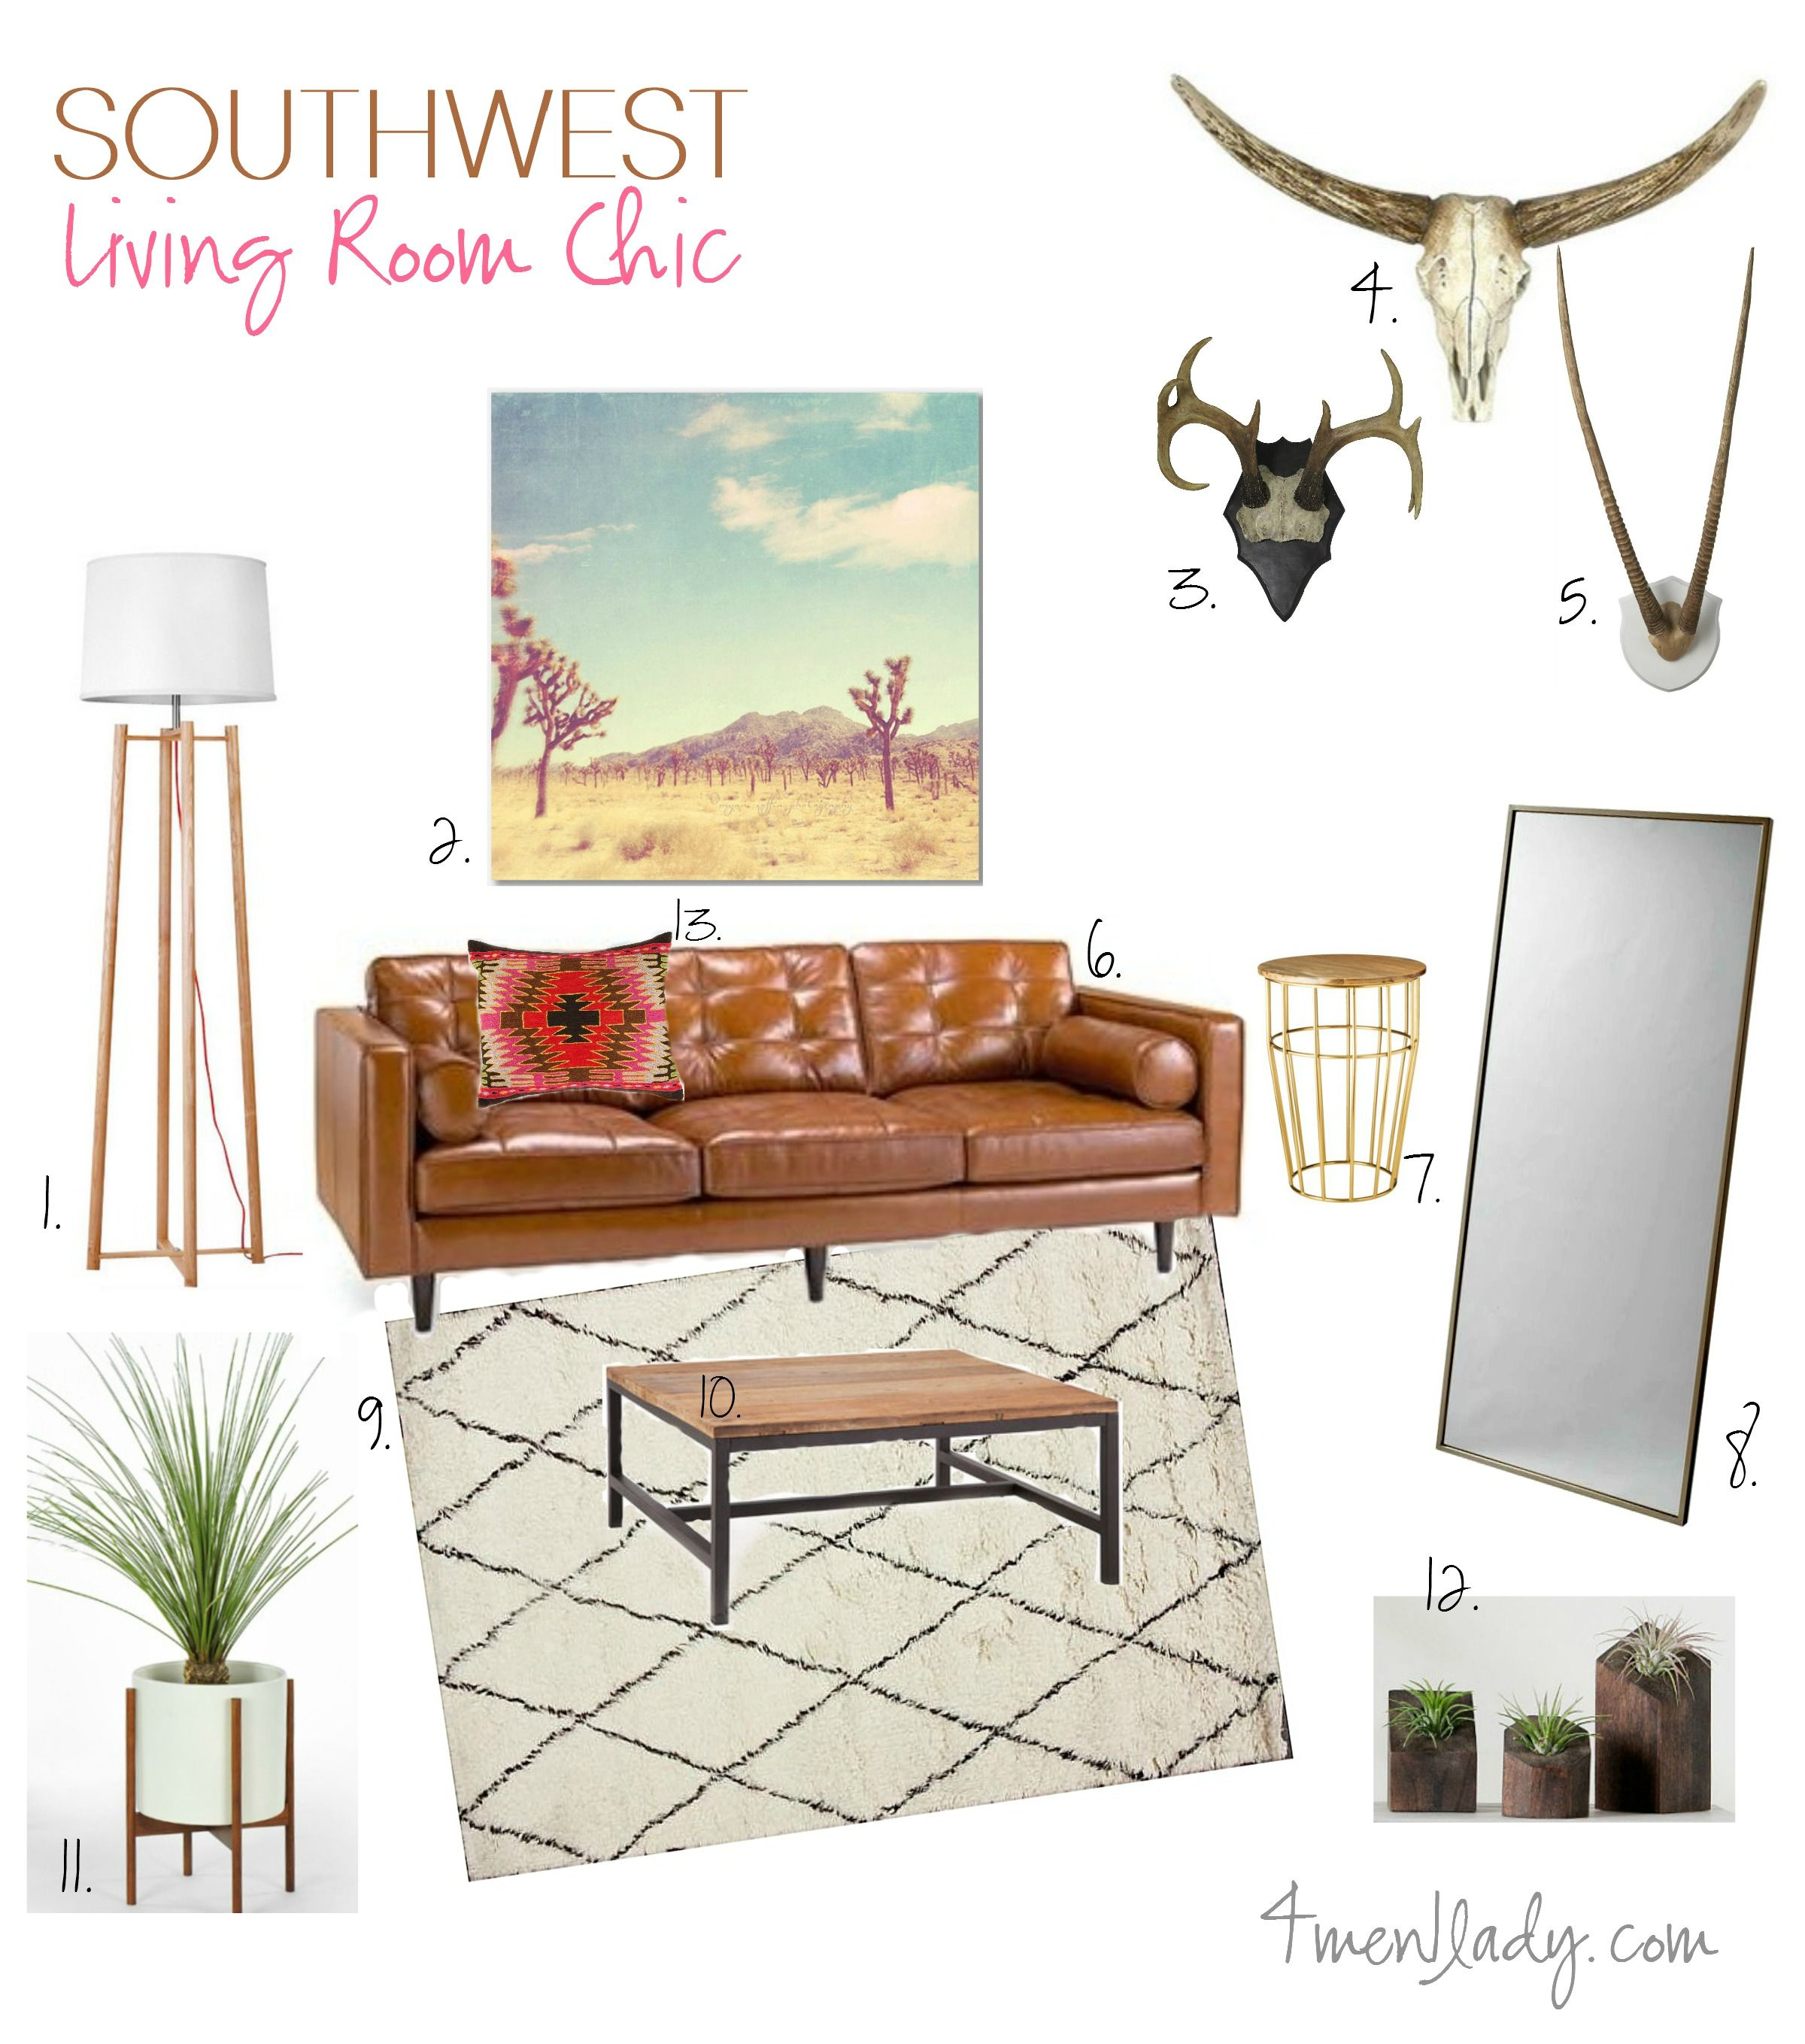 Southwest Living Room Mood Board. 4men1lady.com